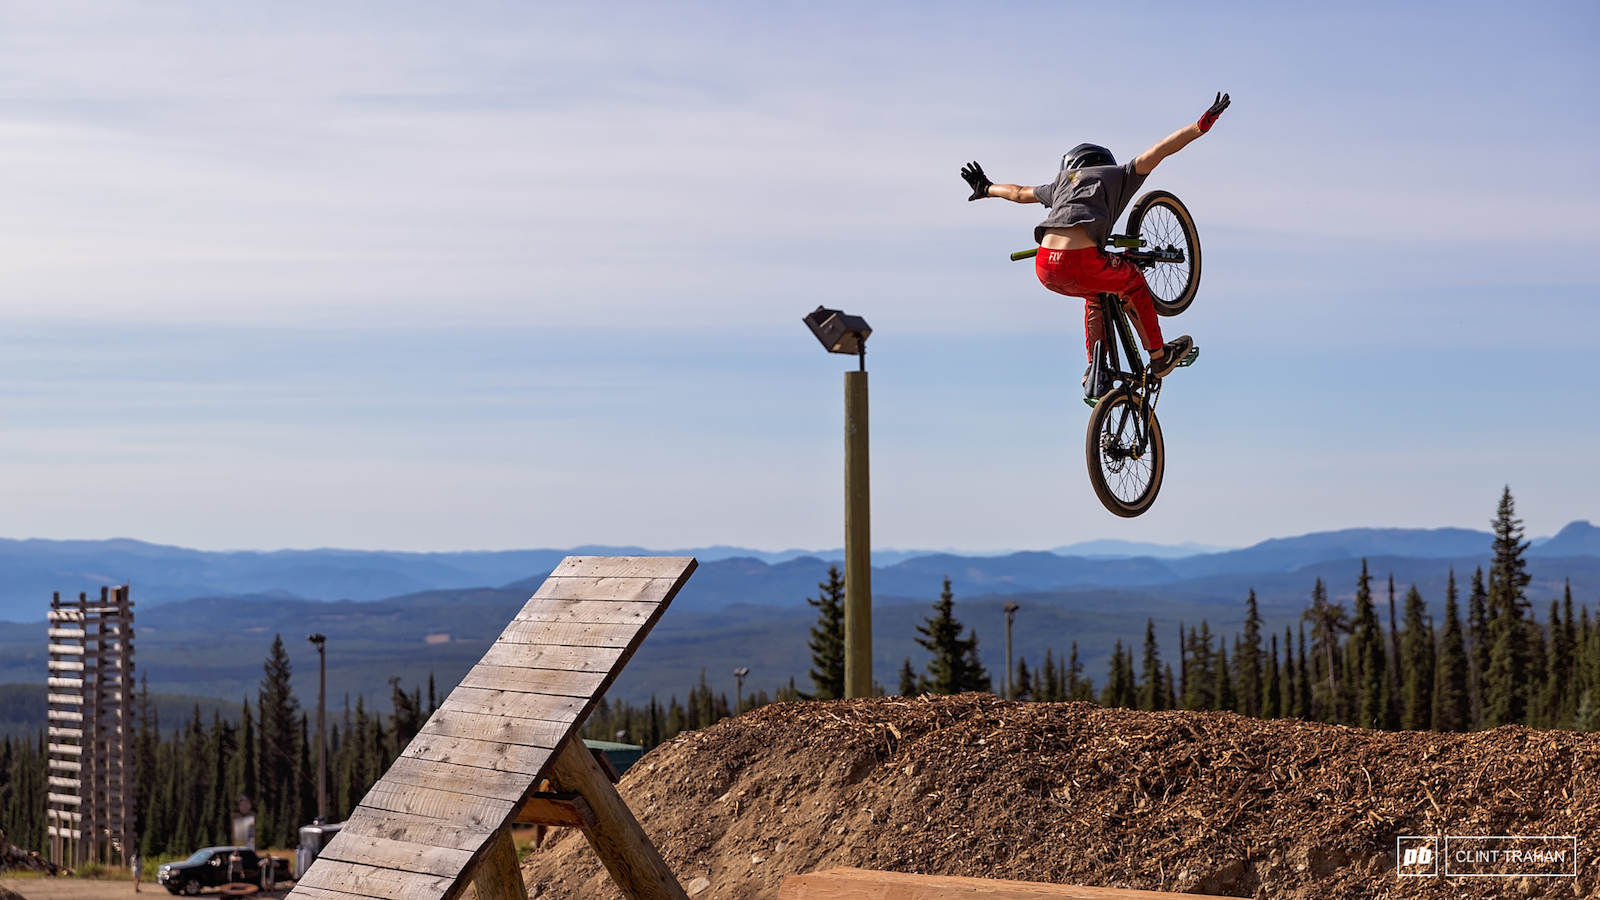 Grom riding at Big White